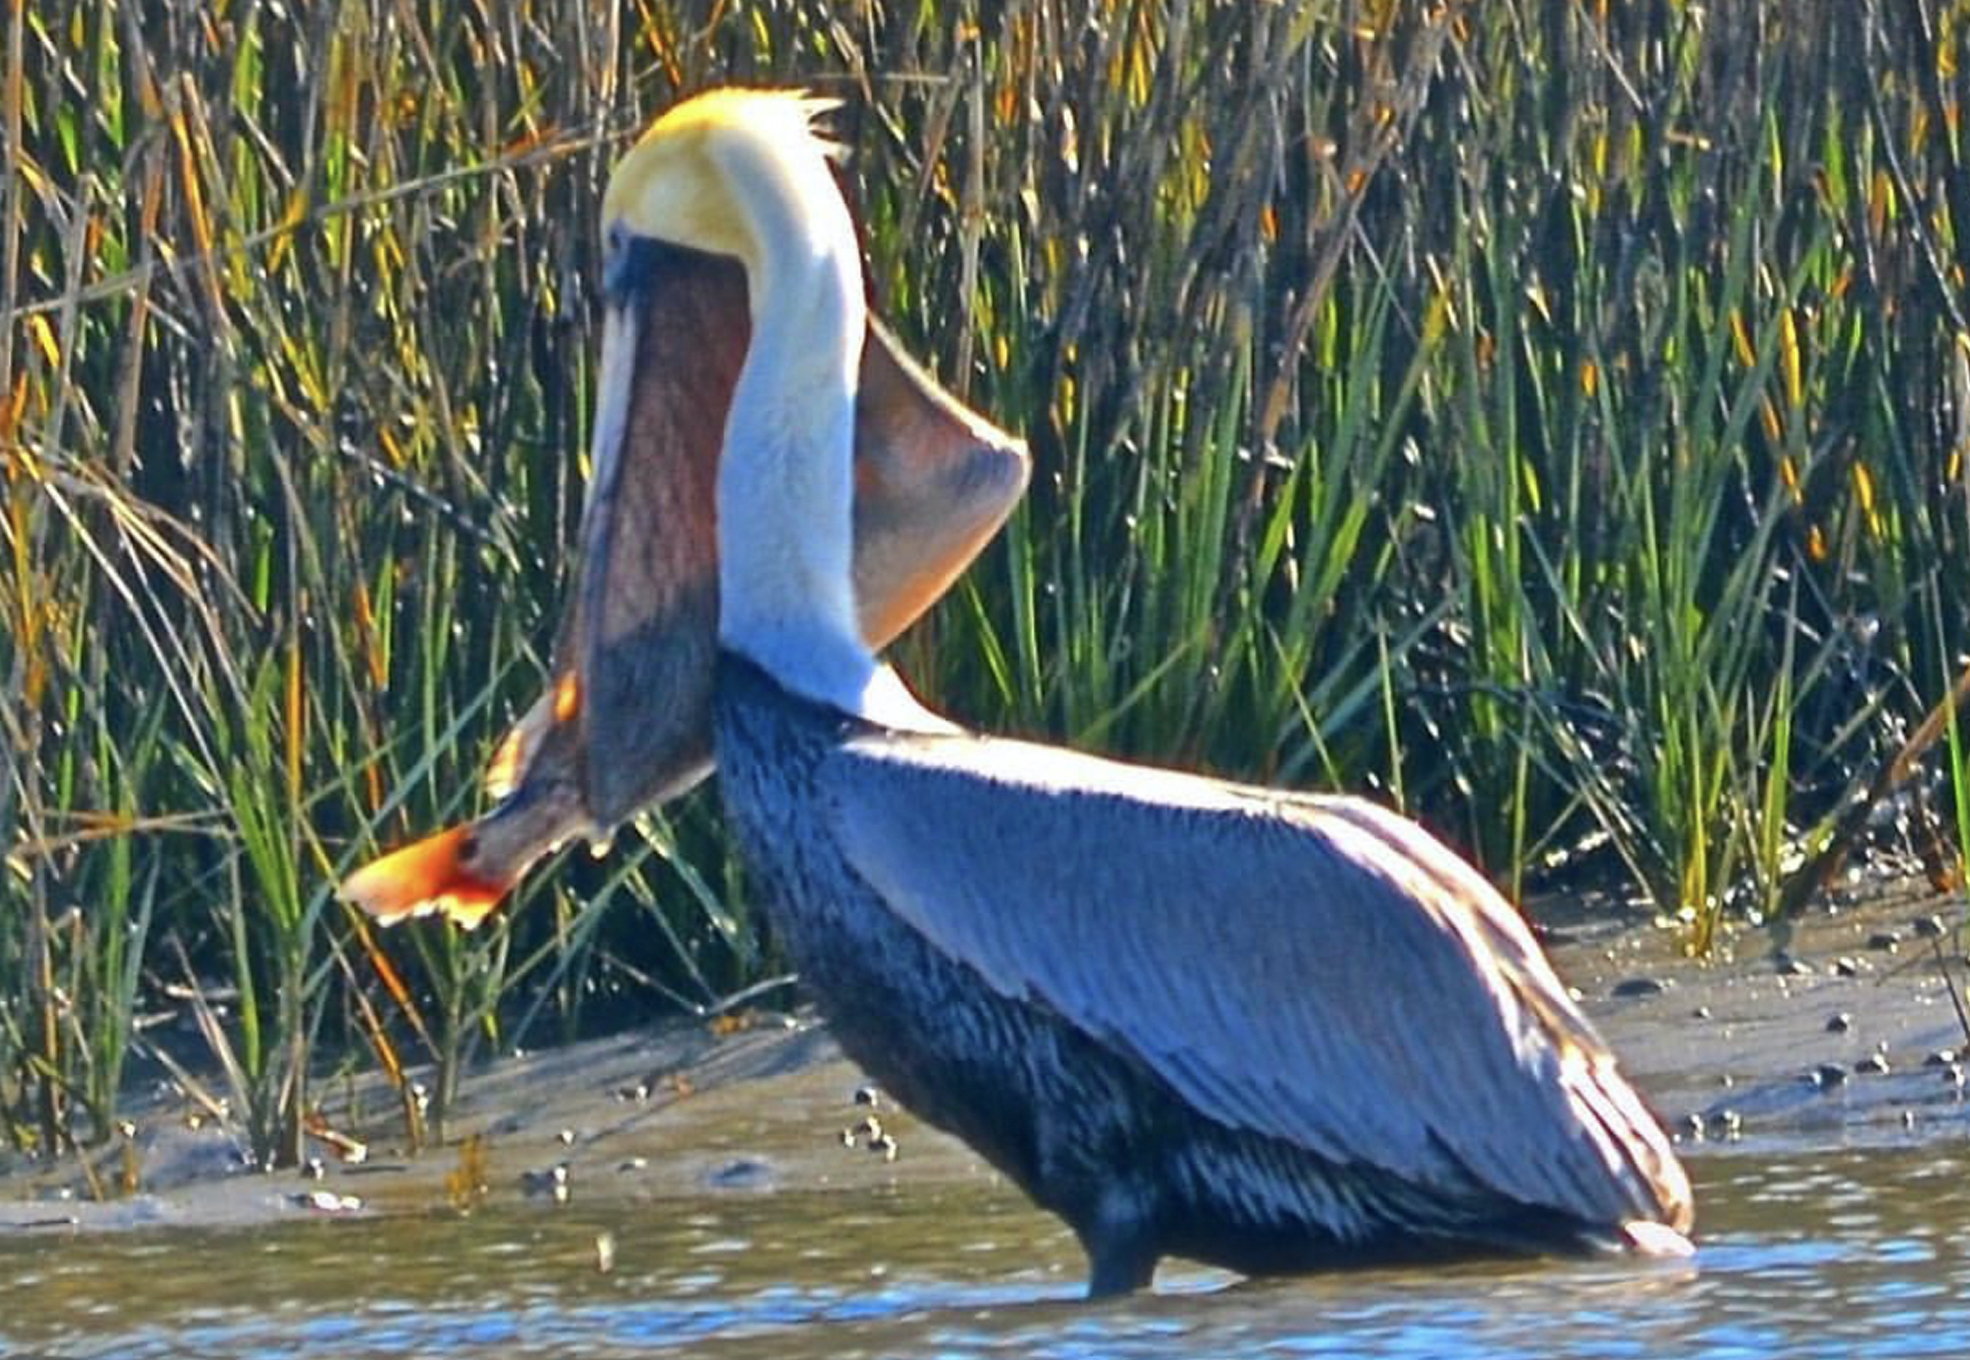 The Original High Divers, the Brown Pelican